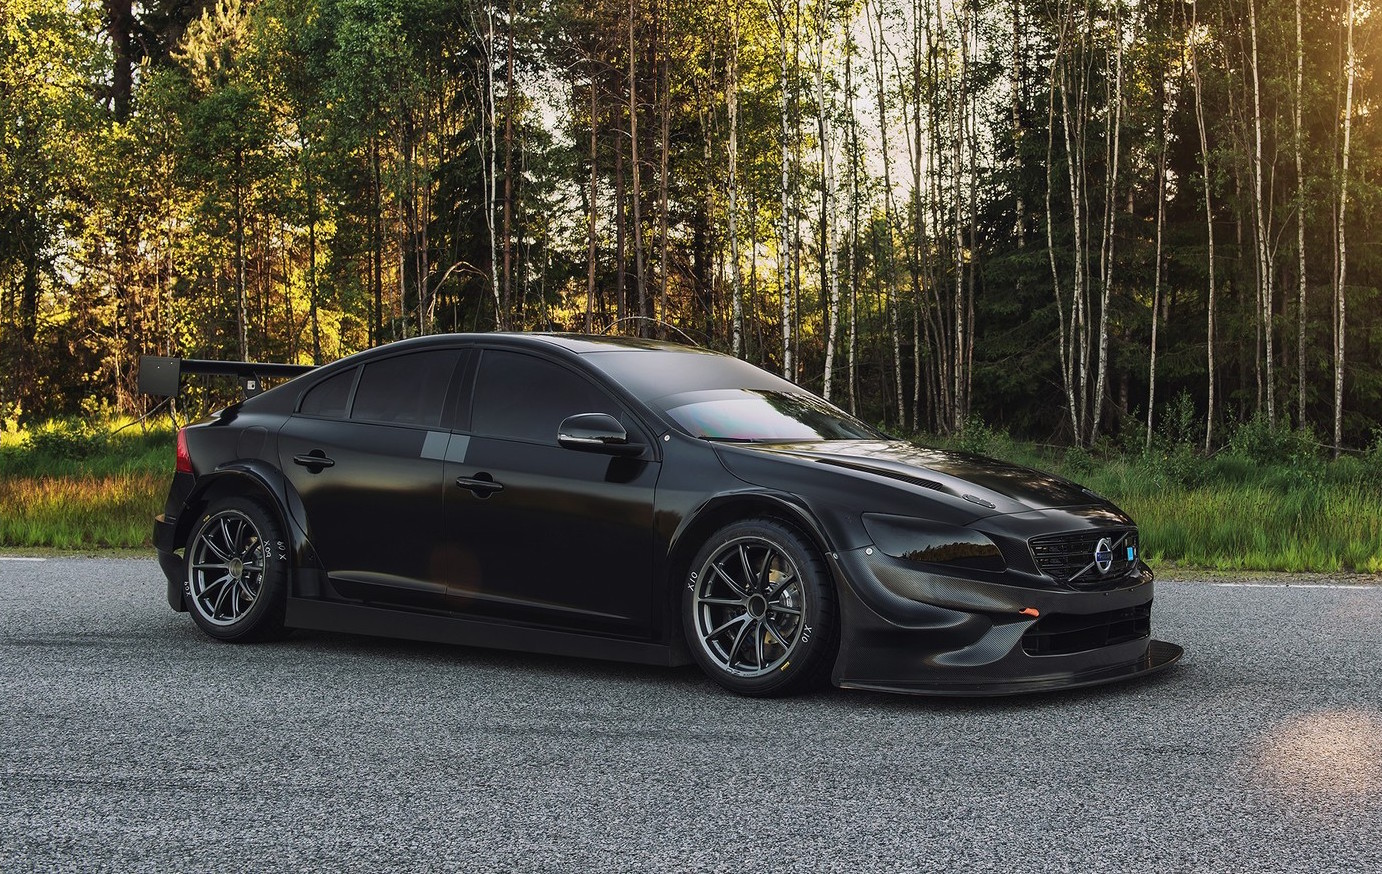 Volvo S60 Polestar >> Polestar Volvo S60 WTCC racer getting ready for 2017 ...